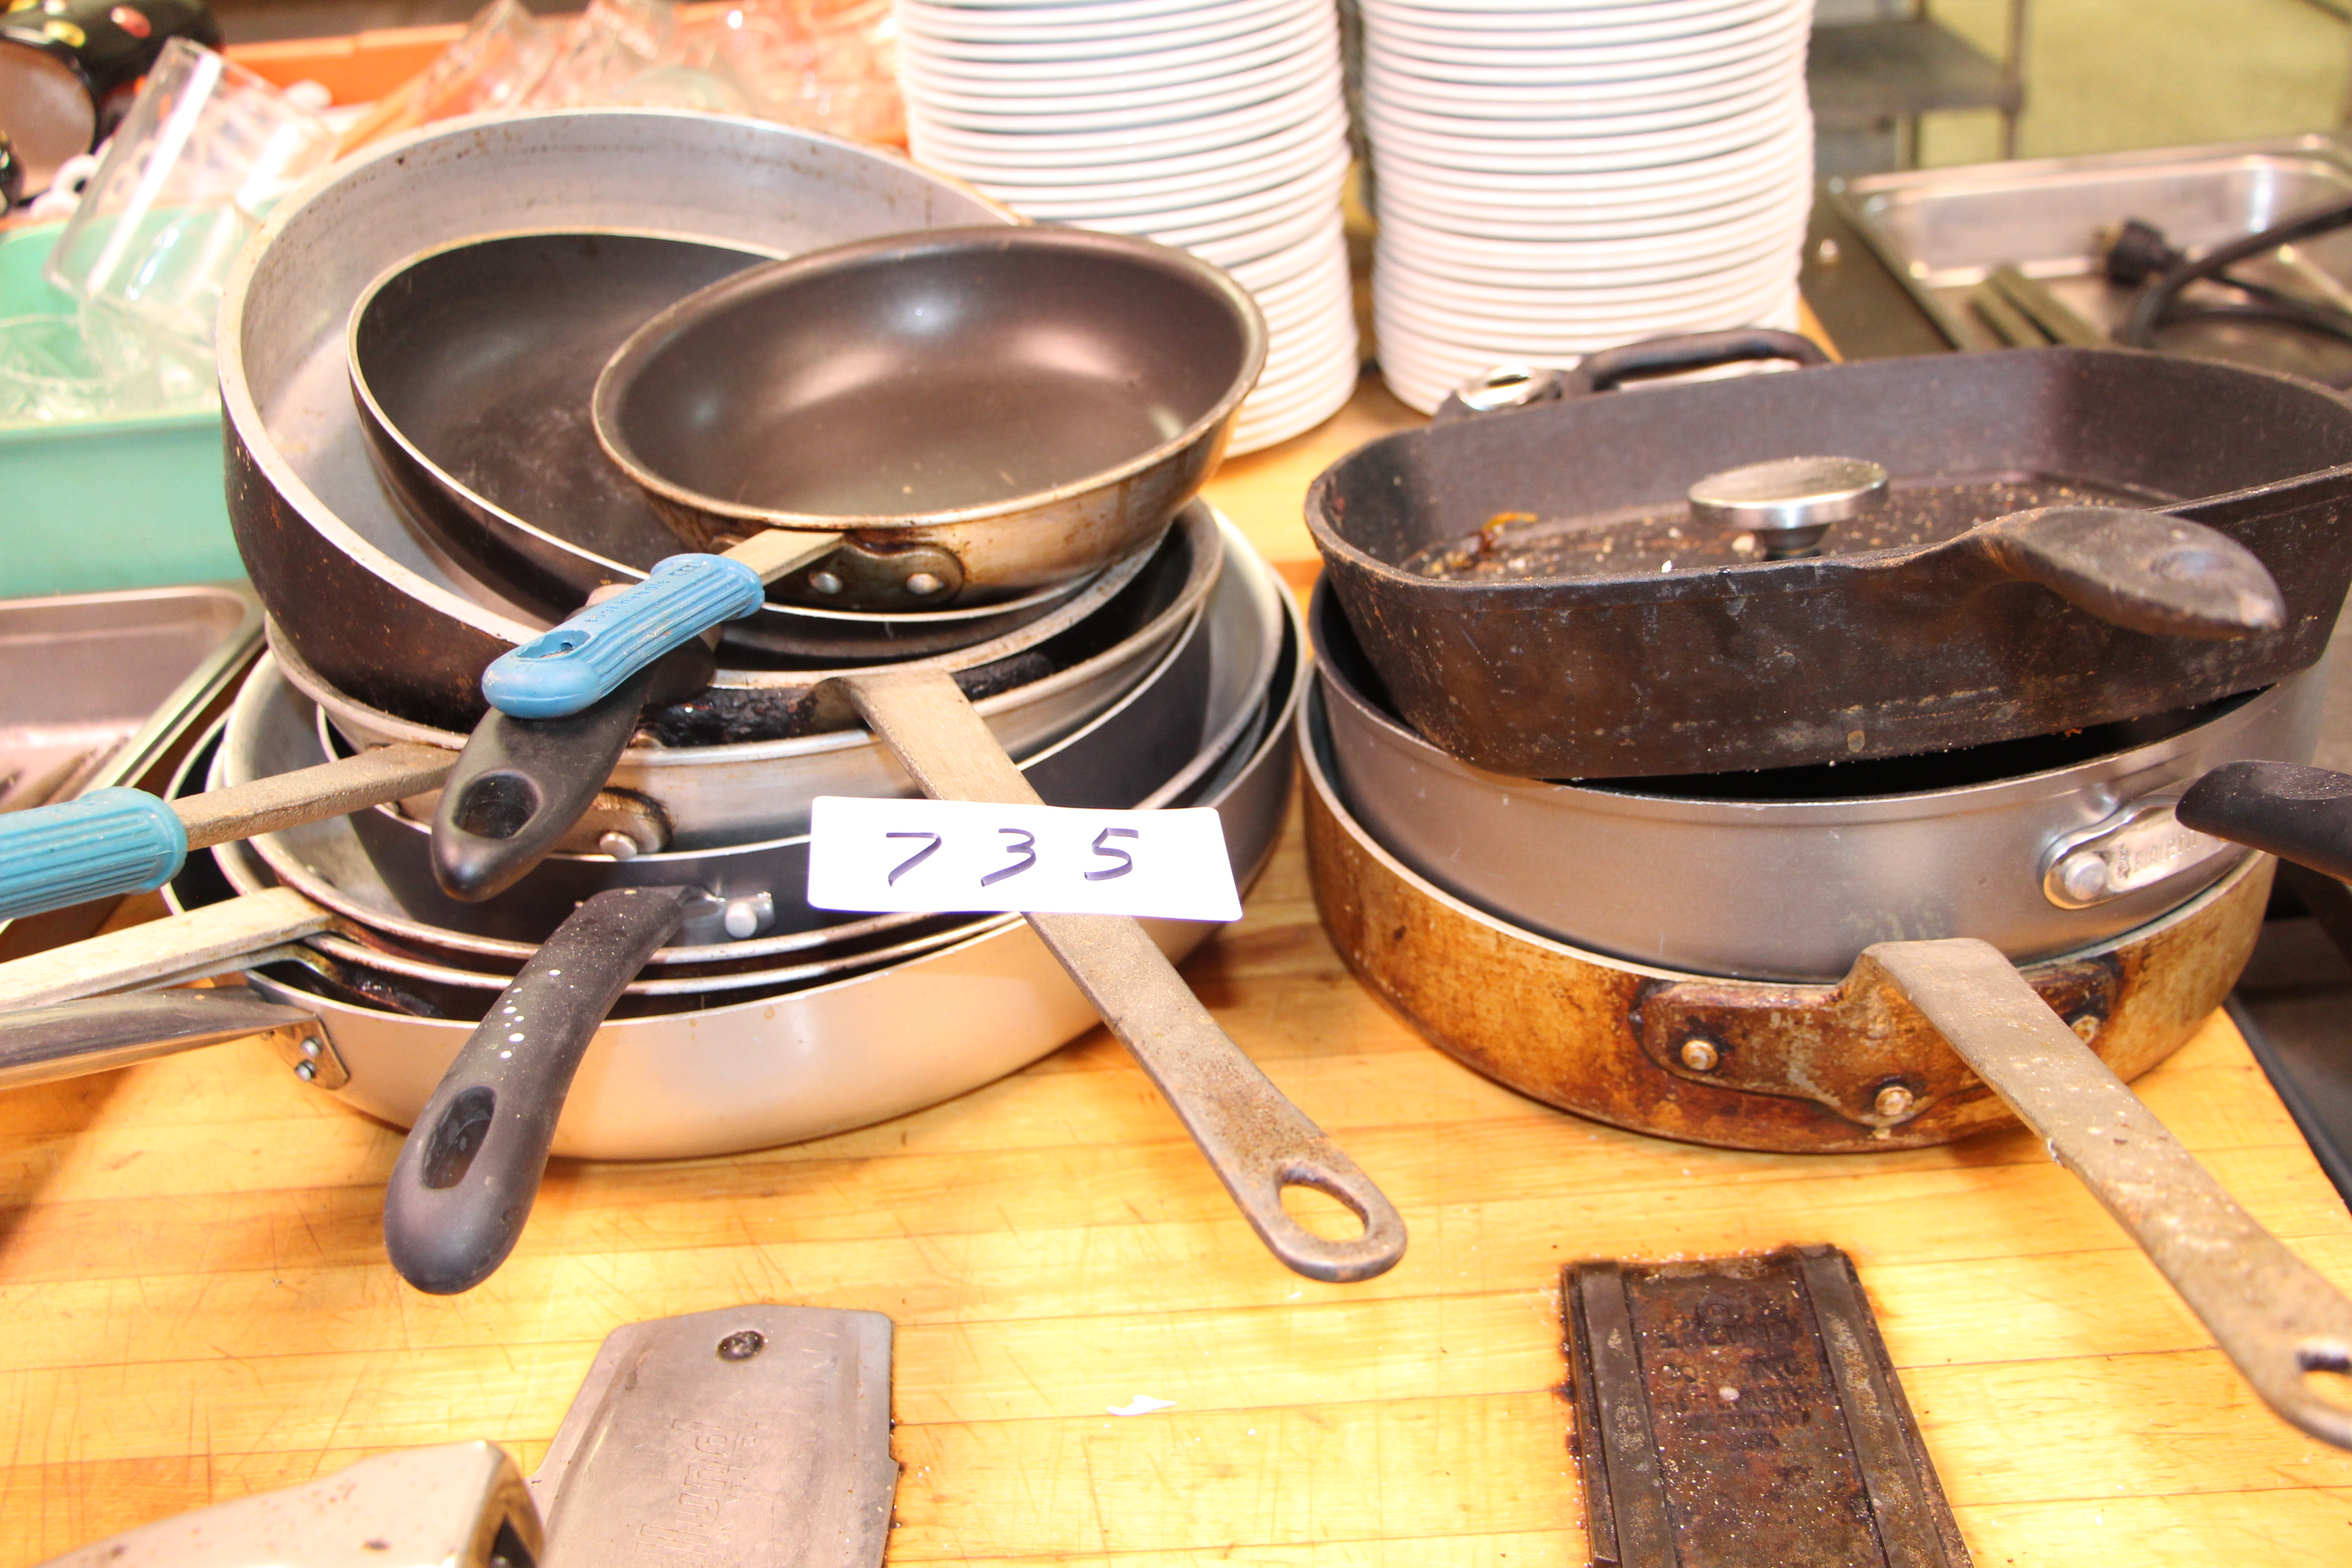 Lot 735 - Lot misc cooking pans etc